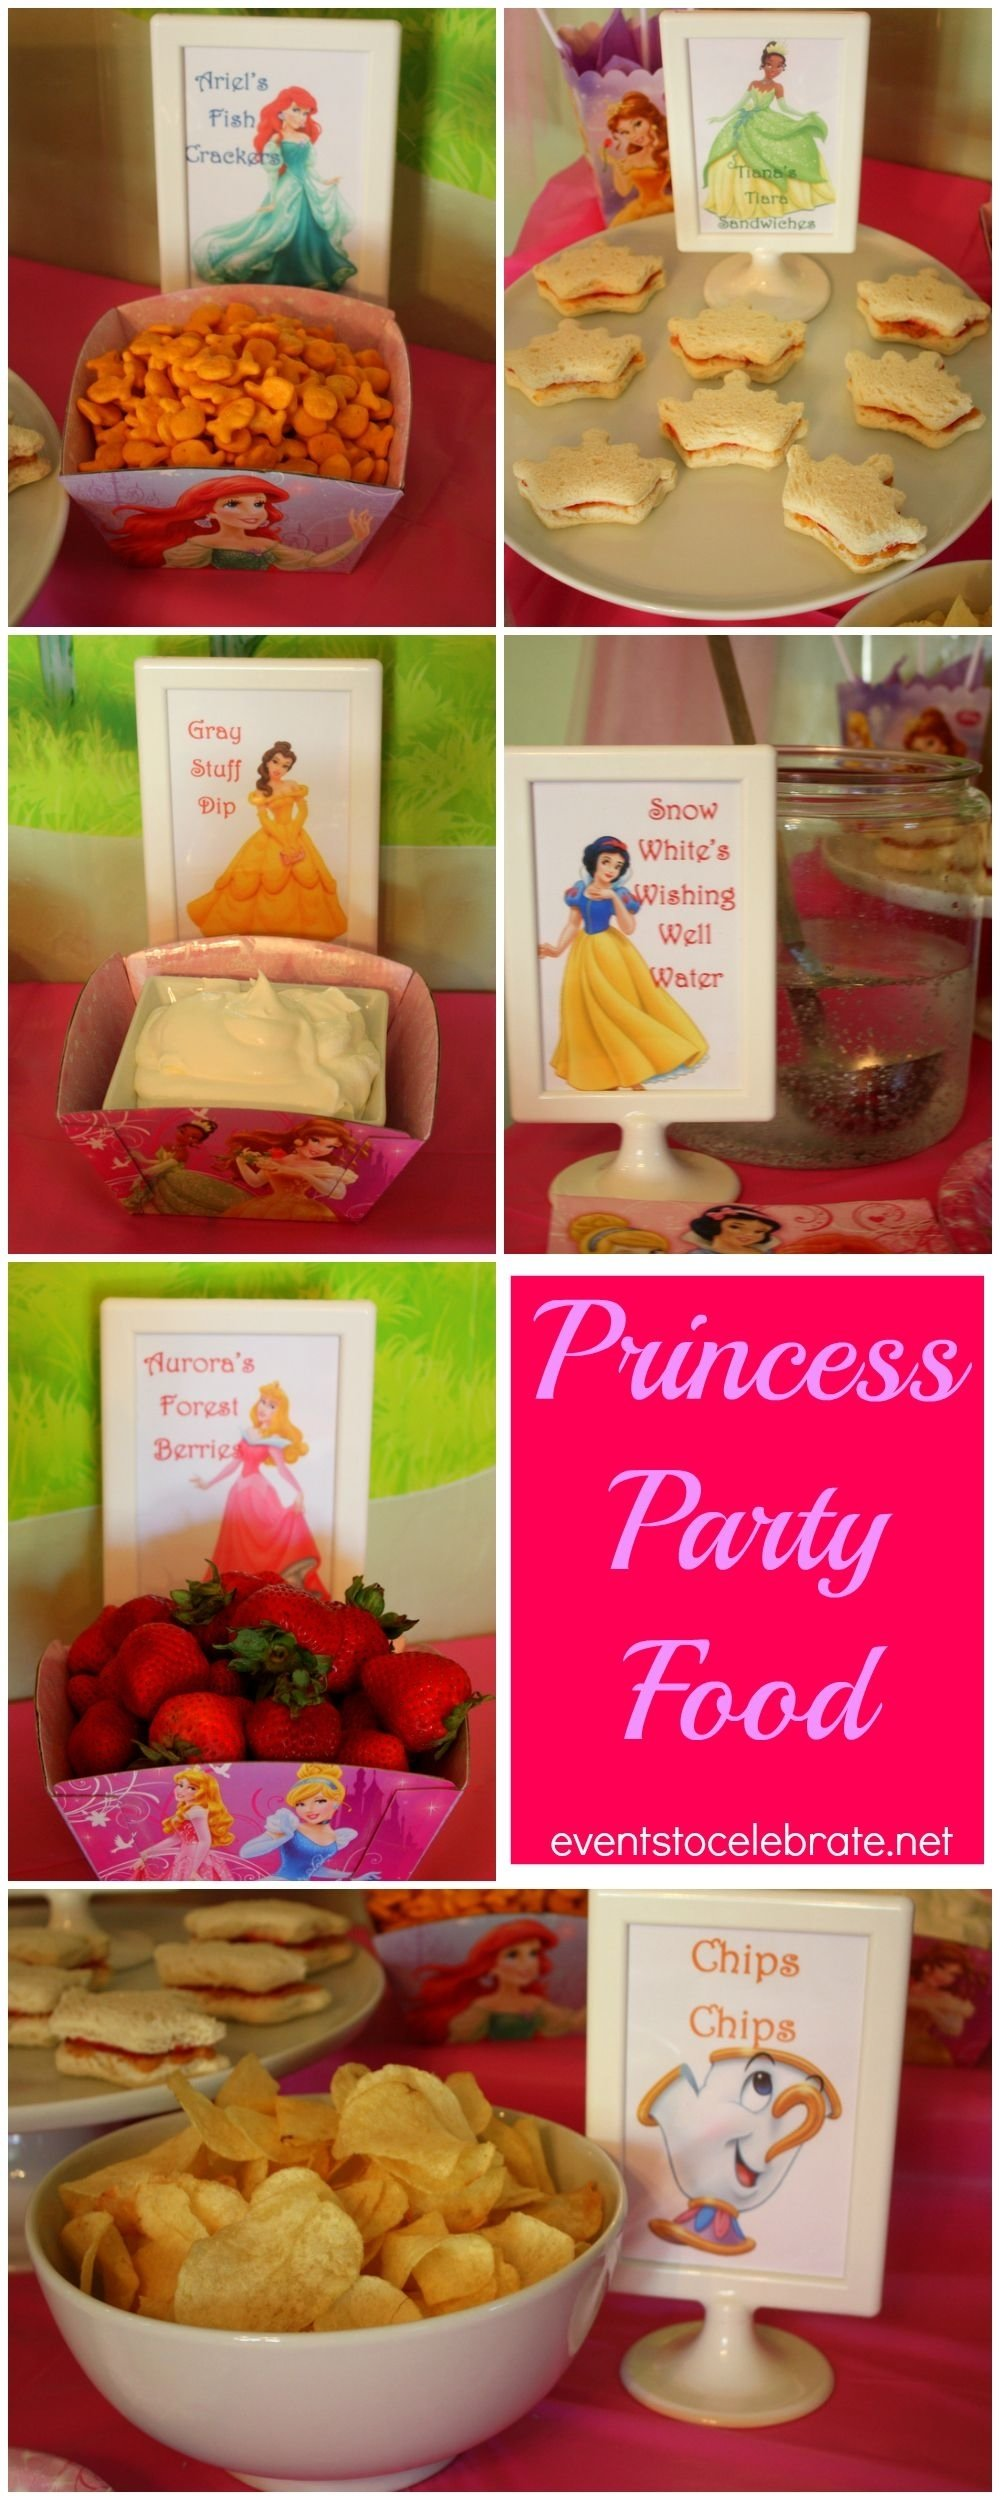 disney princess birthday party ideas: food & decorations | prince